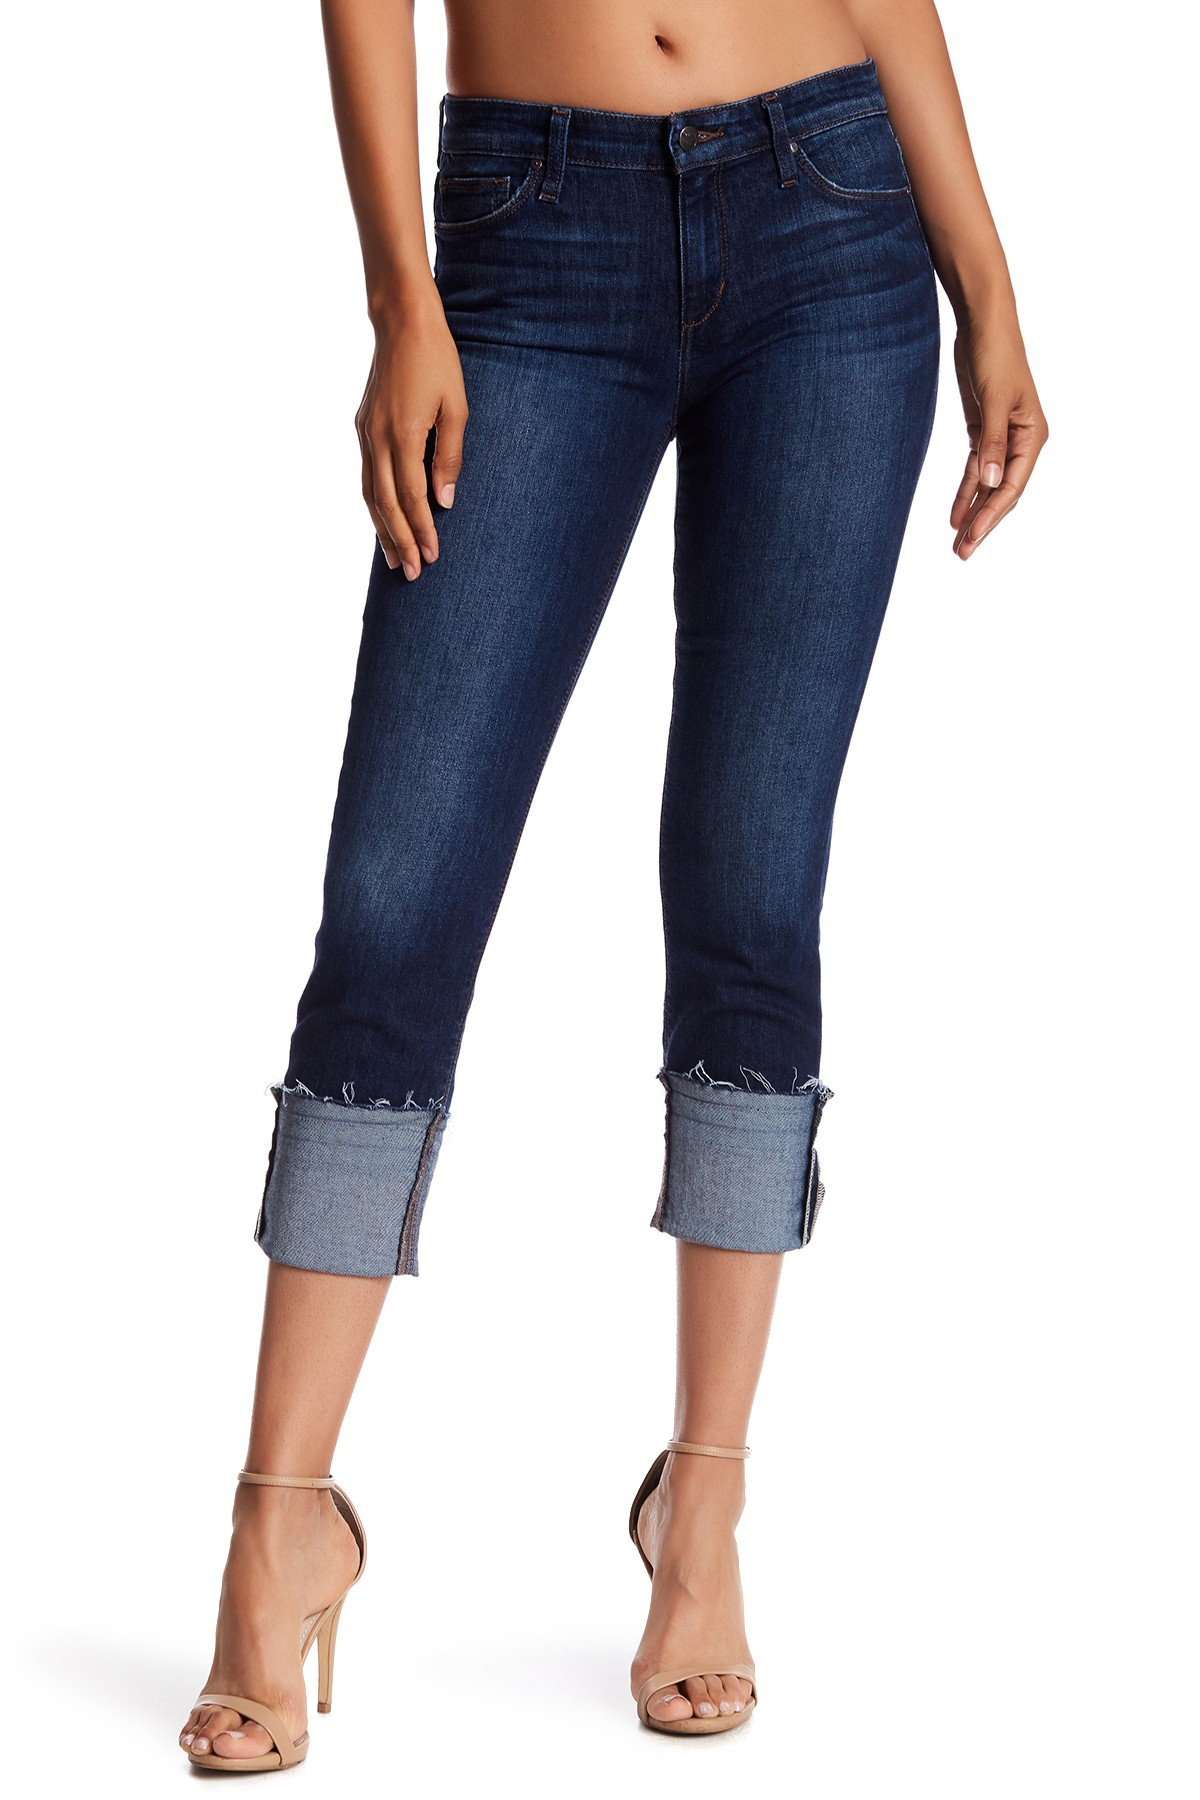 cuffed crop jeans with nude heels